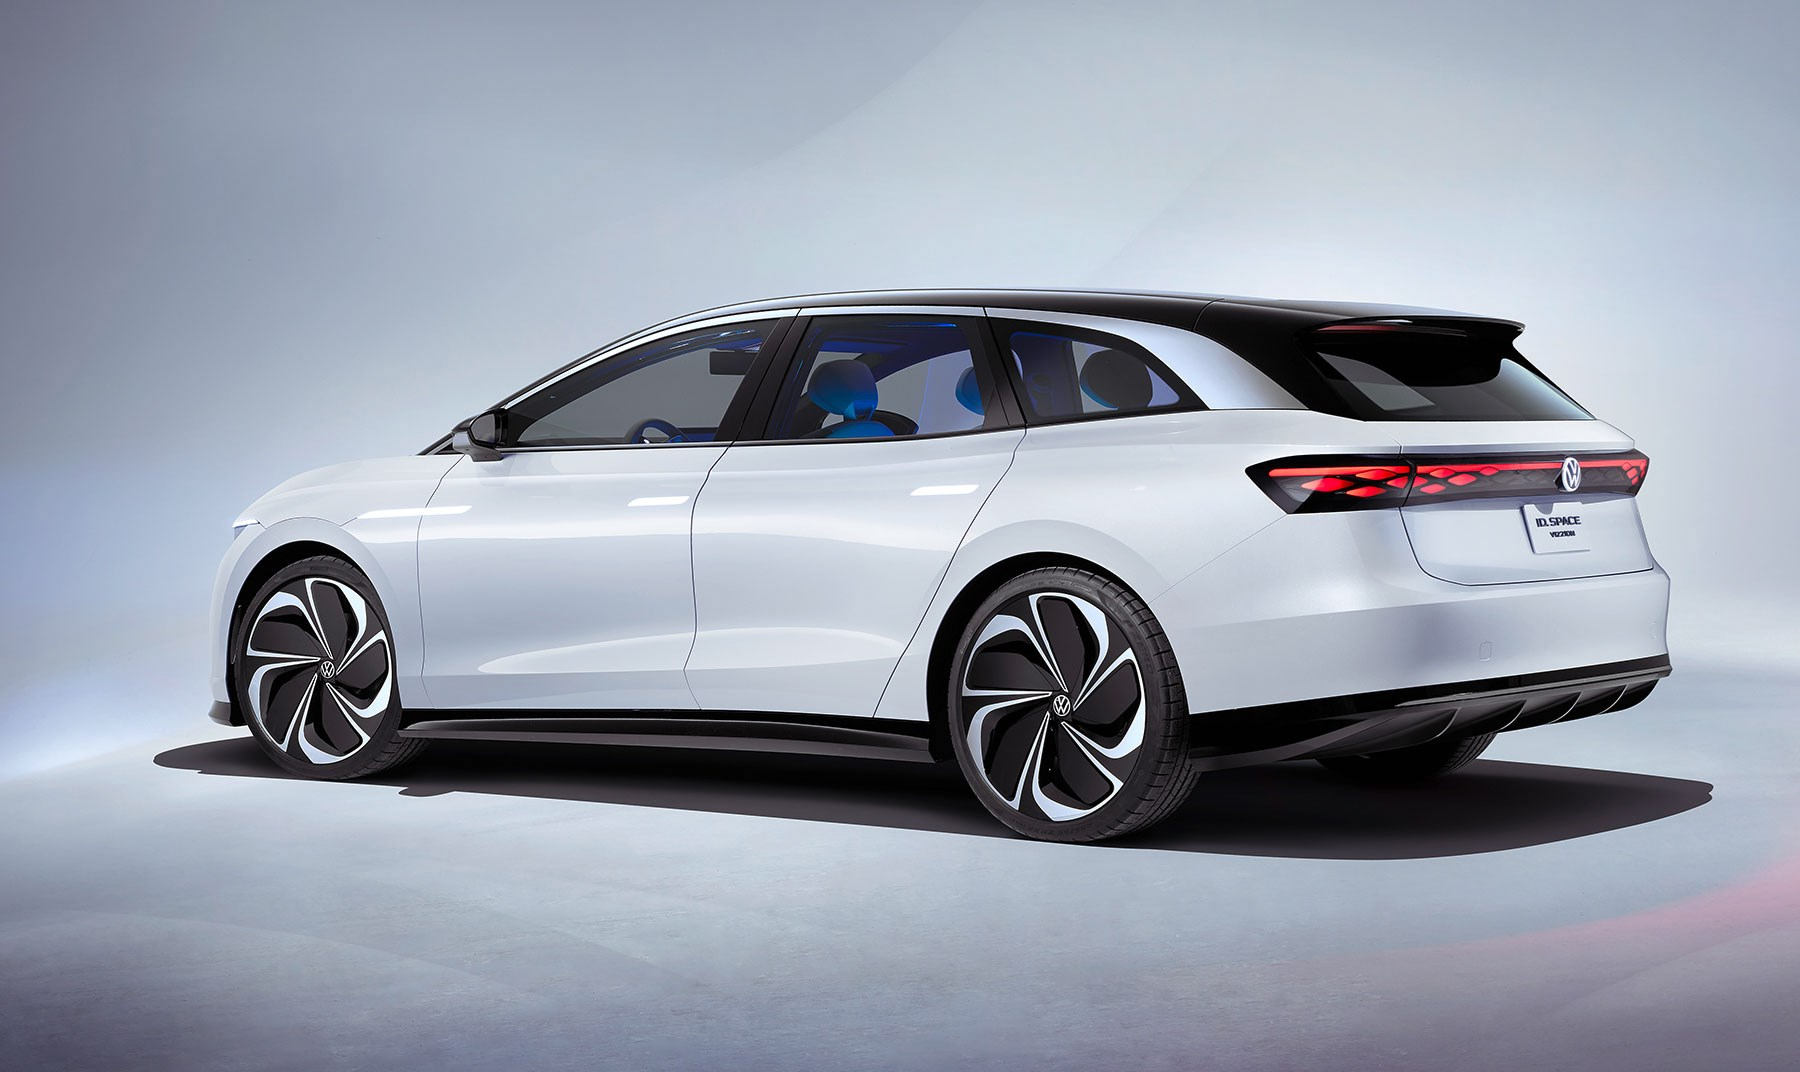 Volkswagen's seventh ID. concept, ID. Space Vizzion revealed